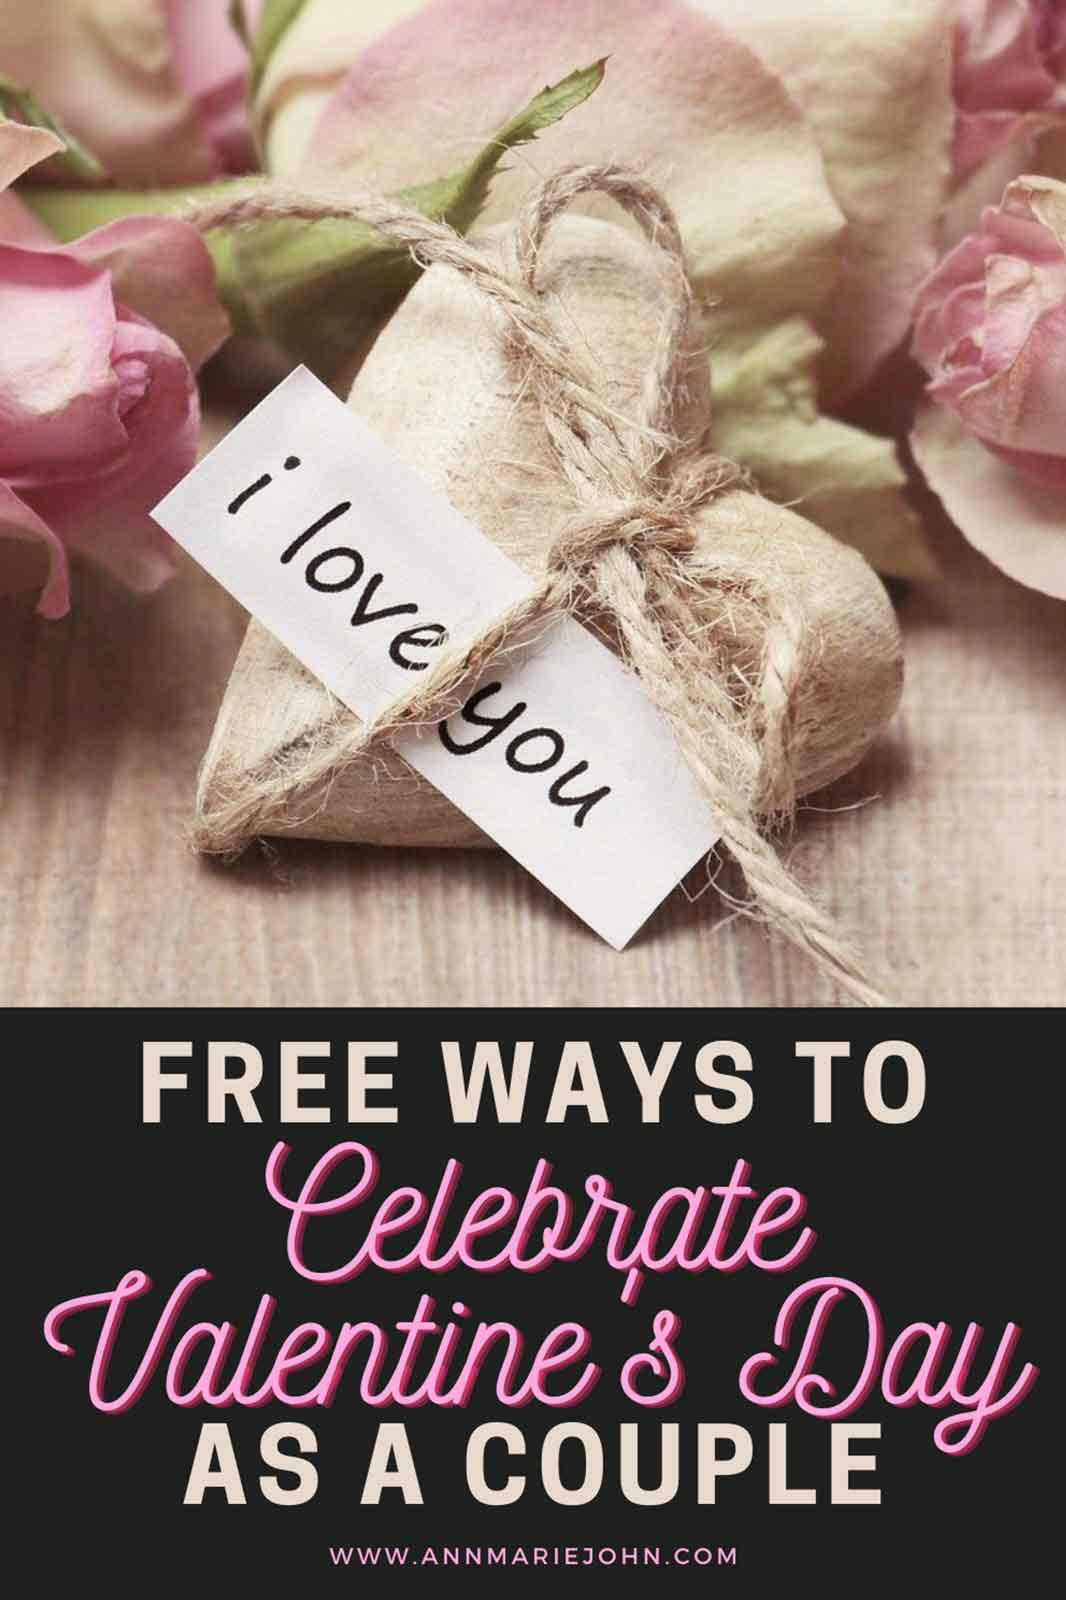 Free Ways to Celebrate Valentine's Day as a Couple